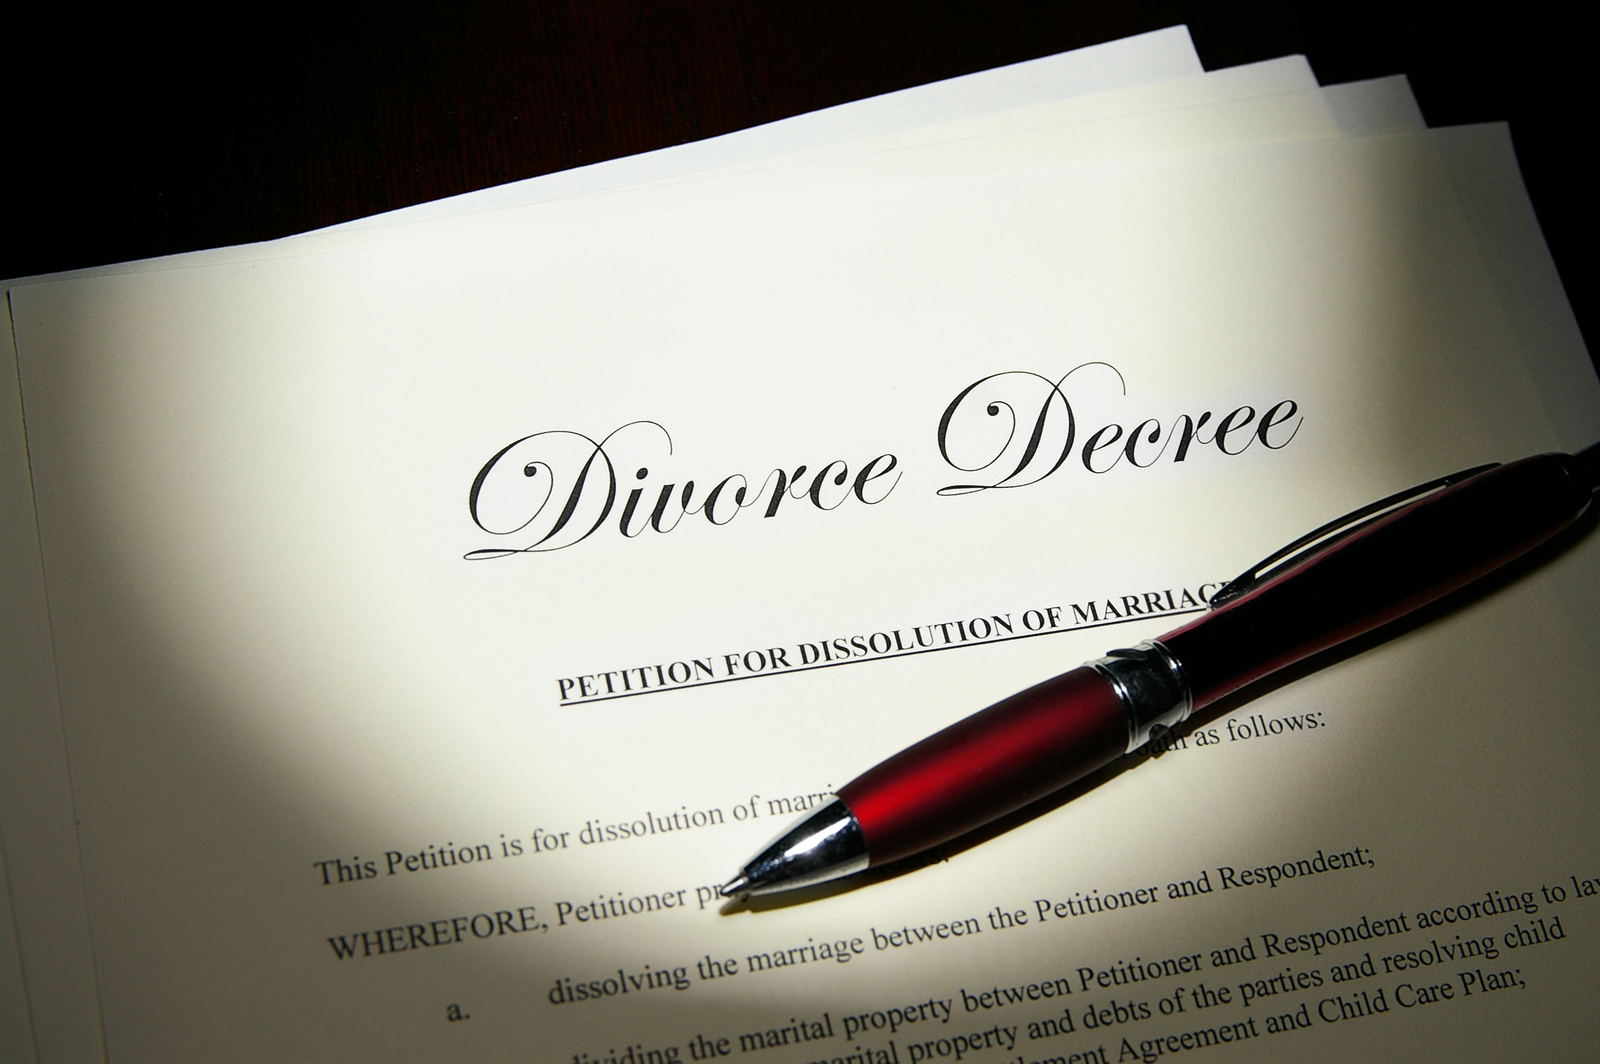 How To Find A Divorce Decree